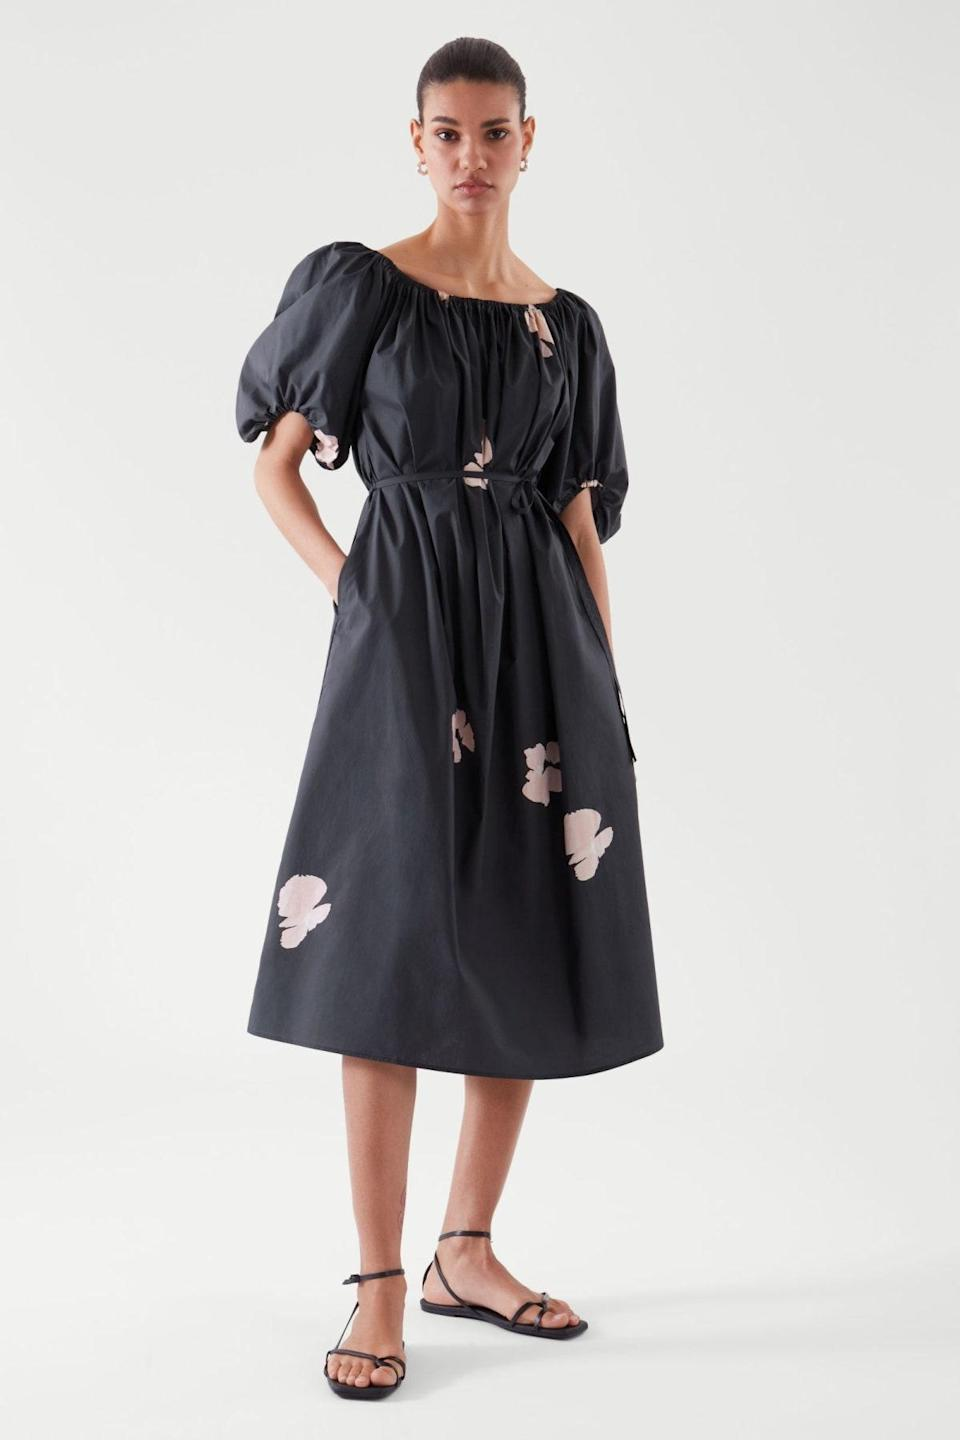 """Revel in the endless versatility of this belted midi, which you can gracefully adjust to accommodate a mini food baby. The dessert bar is calling… $109, Cos. <a href=""""https://www.cosstores.com/en_usd/women/womenswear/dresses/product.puff-sleeve-dress-black.1016405001.html"""" rel=""""nofollow noopener"""" target=""""_blank"""" data-ylk=""""slk:Get it now!"""" class=""""link rapid-noclick-resp"""">Get it now!</a>"""